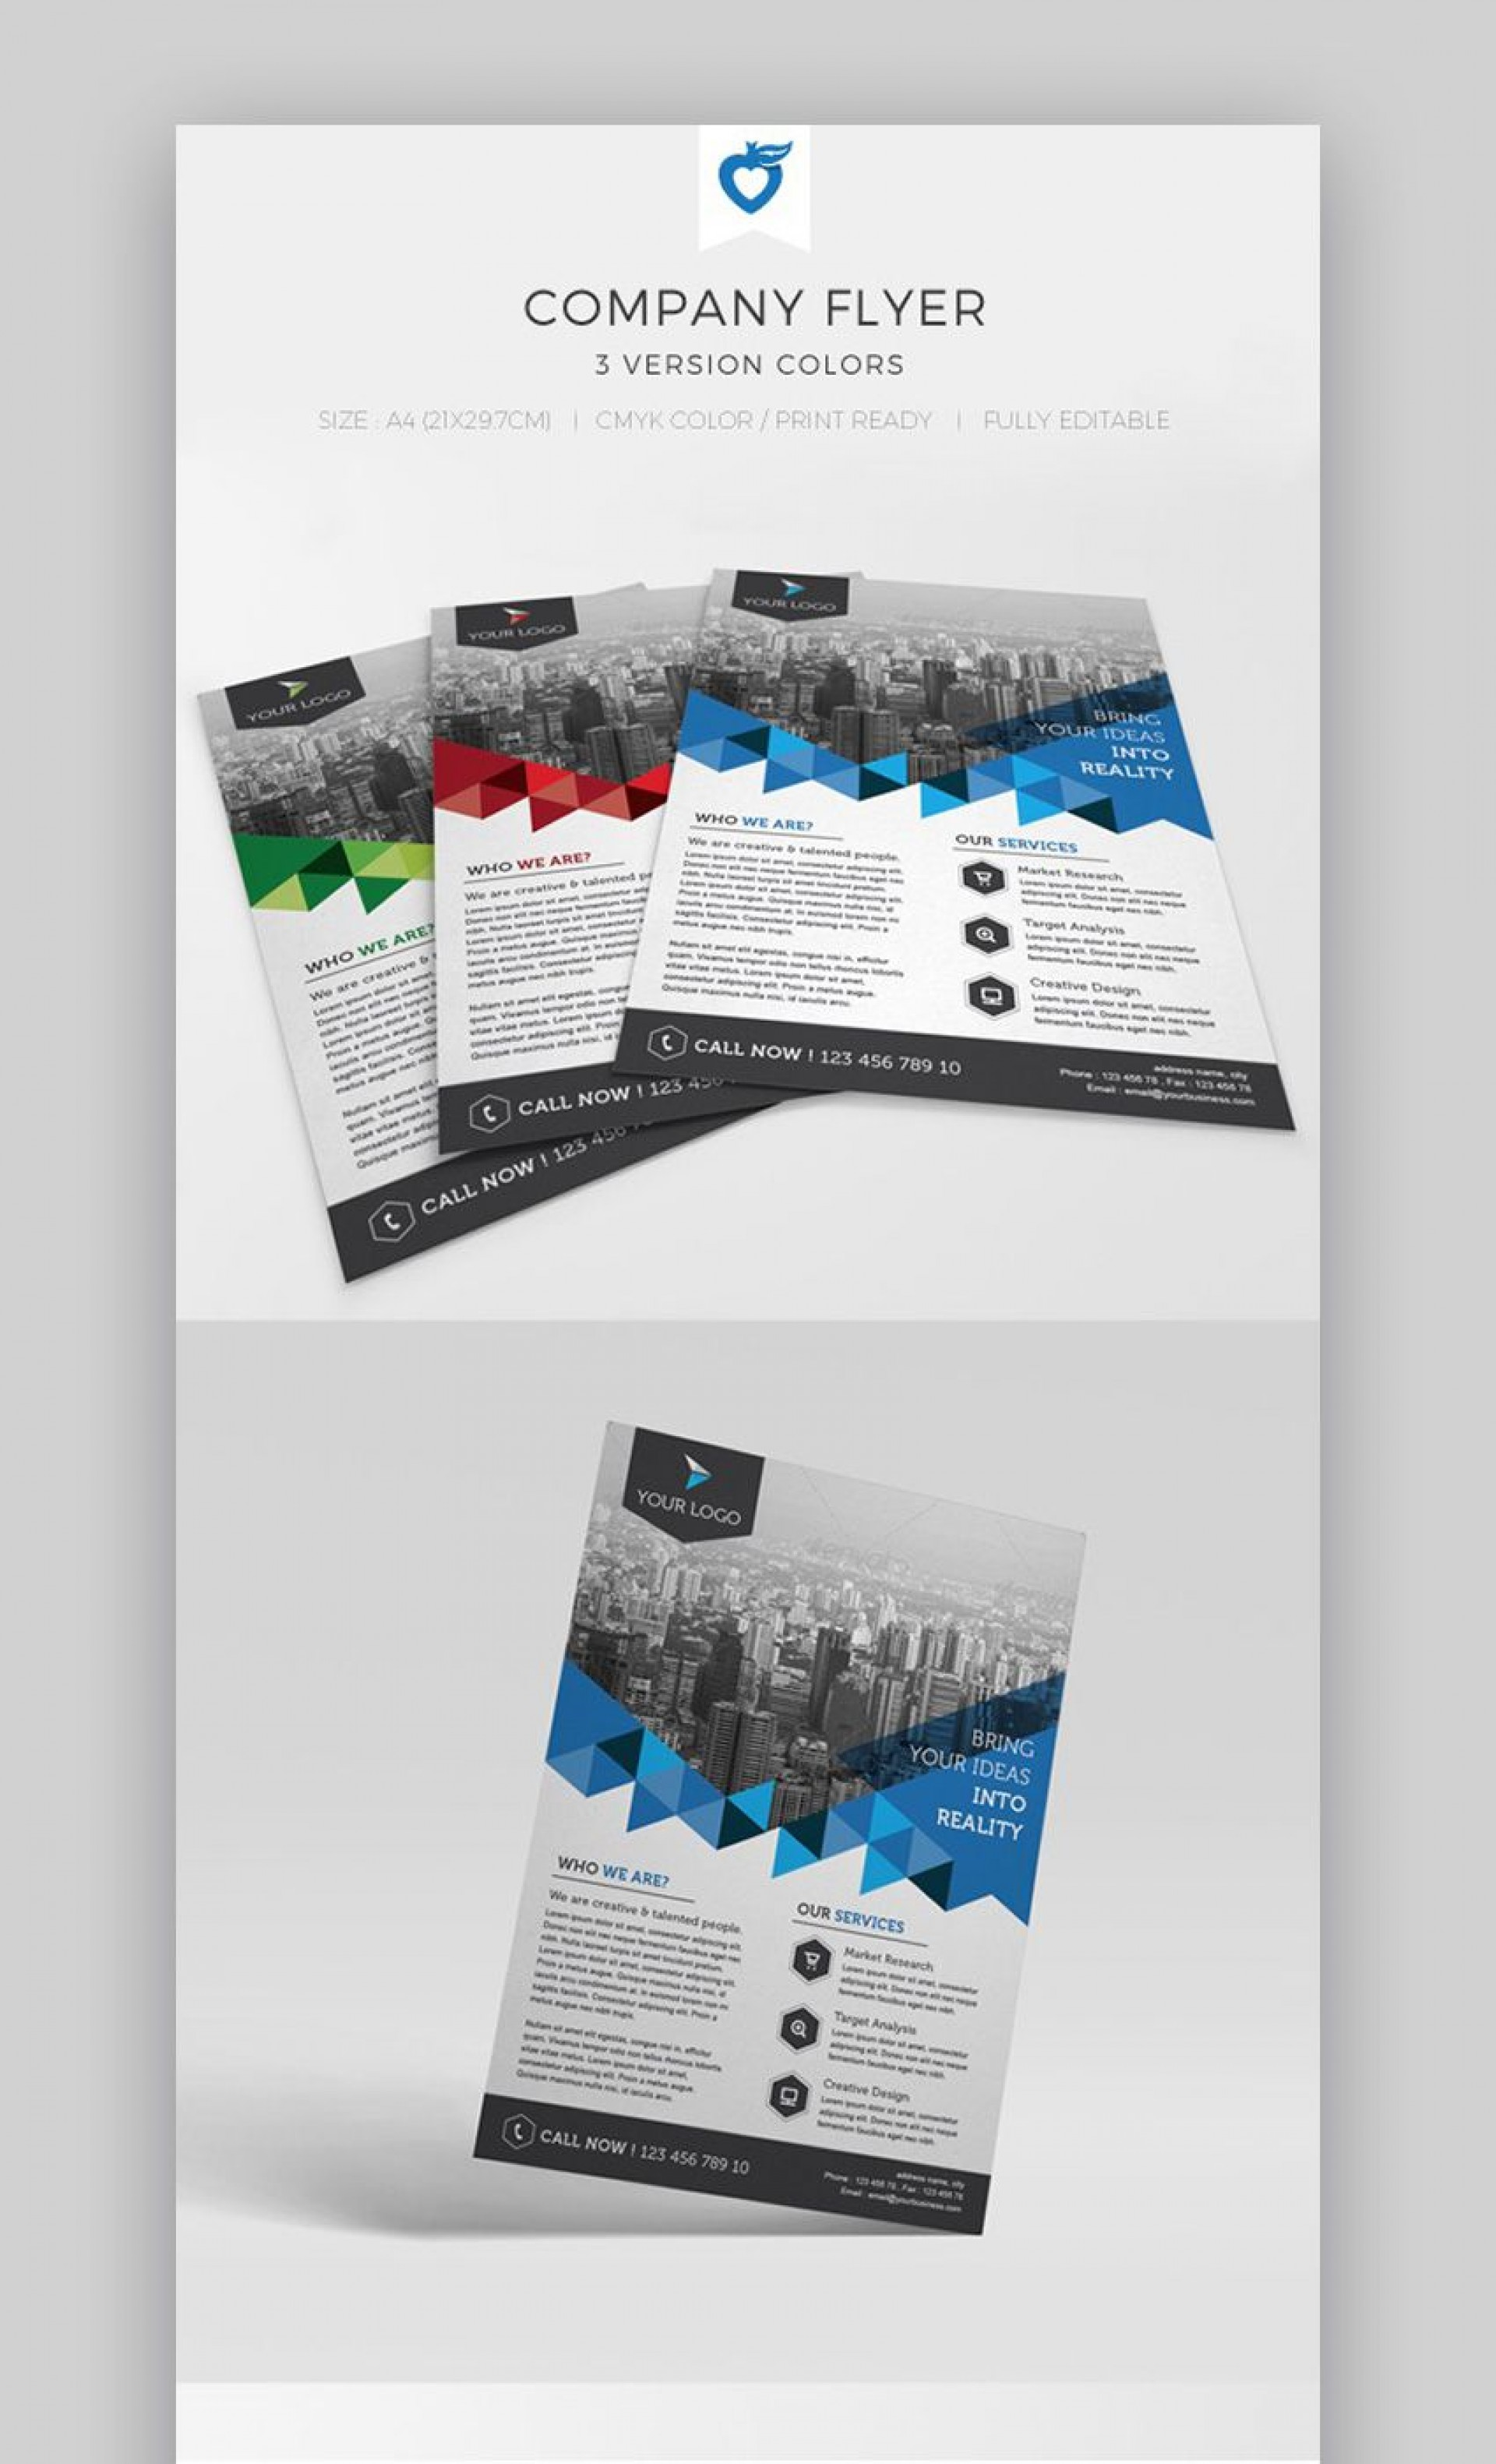 002 Singular Free Print Ad Template Sample  Templates Real Estate For Word1920